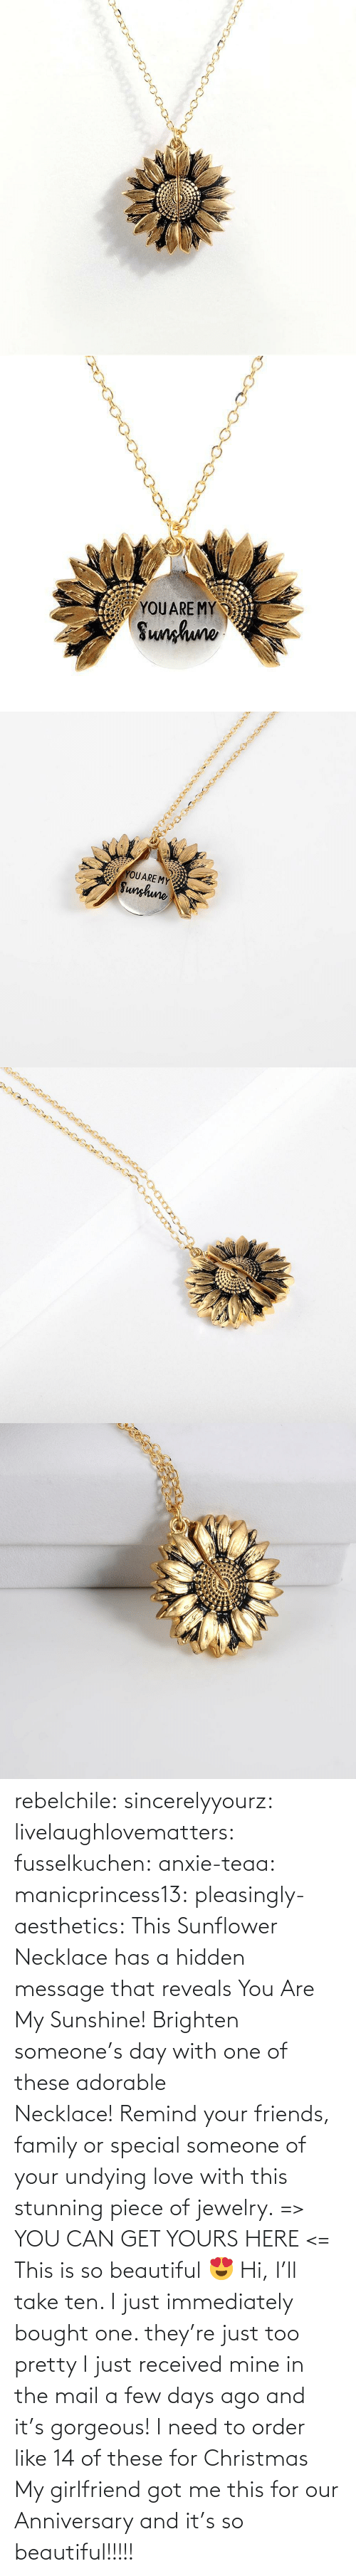 Can Get: YOUARE MY  Sunhuno   YOUARE MY  Sunghune rebelchile:  sincerelyyourz:  livelaughlovematters:  fusselkuchen:  anxie-teaa:   manicprincess13:   pleasingly-aesthetics:  This Sunflower Necklace has a hidden message that reveals You Are My Sunshine! Brighten someone's day with one of these adorable Necklace! Remind your friends, family or special someone of your undying love with this stunning piece of jewelry. => YOU CAN GET YOURS HERE <=   This is so beautiful 😍    Hi, I'll take ten.    I just immediately bought one. they're just too pretty   I just received mine in the mail a few days ago and it's gorgeous!   I need to order like 14 of these for Christmas    My girlfriend got me this for our Anniversary and it's so beautiful!!!!!